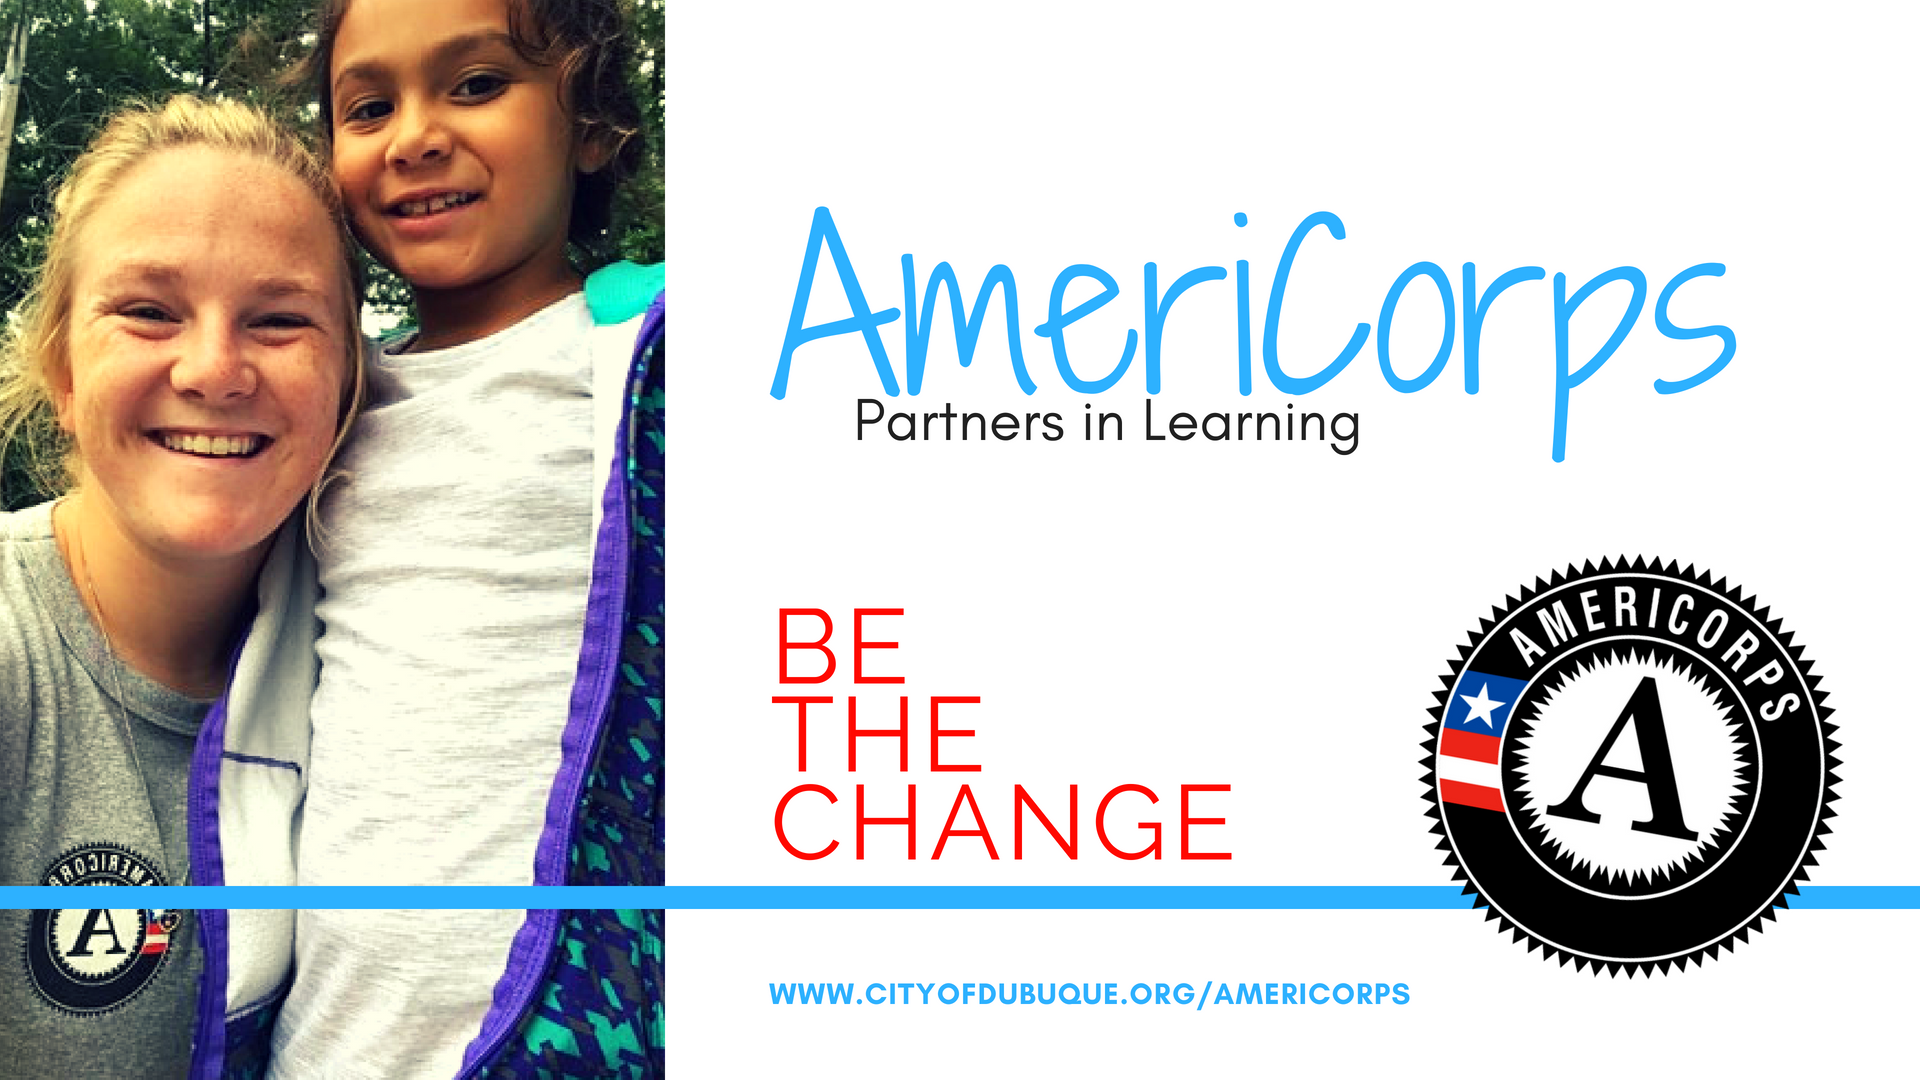 AmeriCorps Slide 1: Member & Child, Be the Change